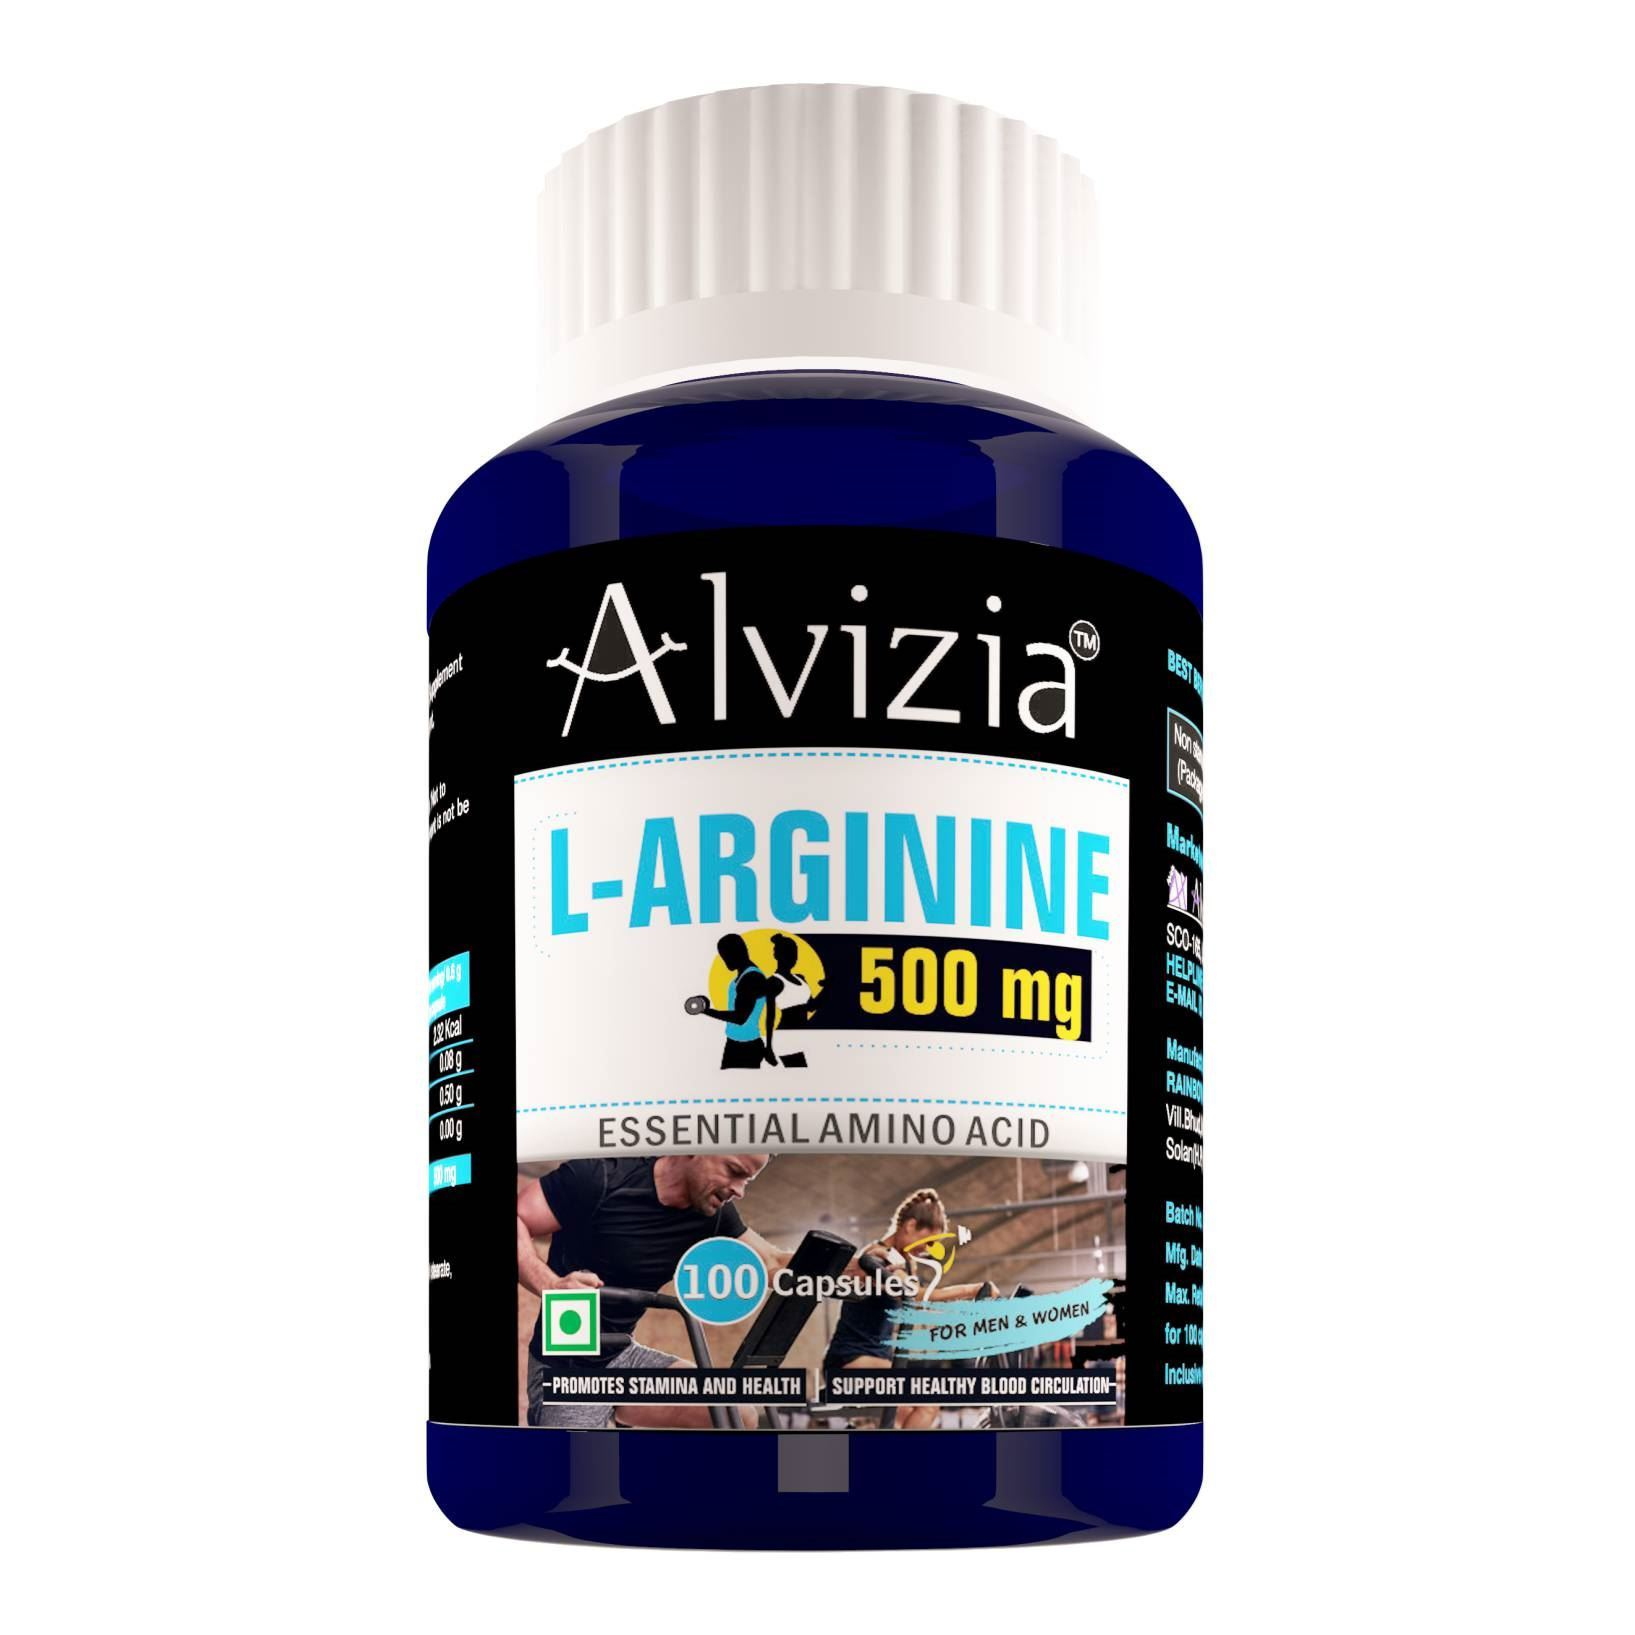 Picture of Alvizia L-Arginine 500 mg 100 Capsules